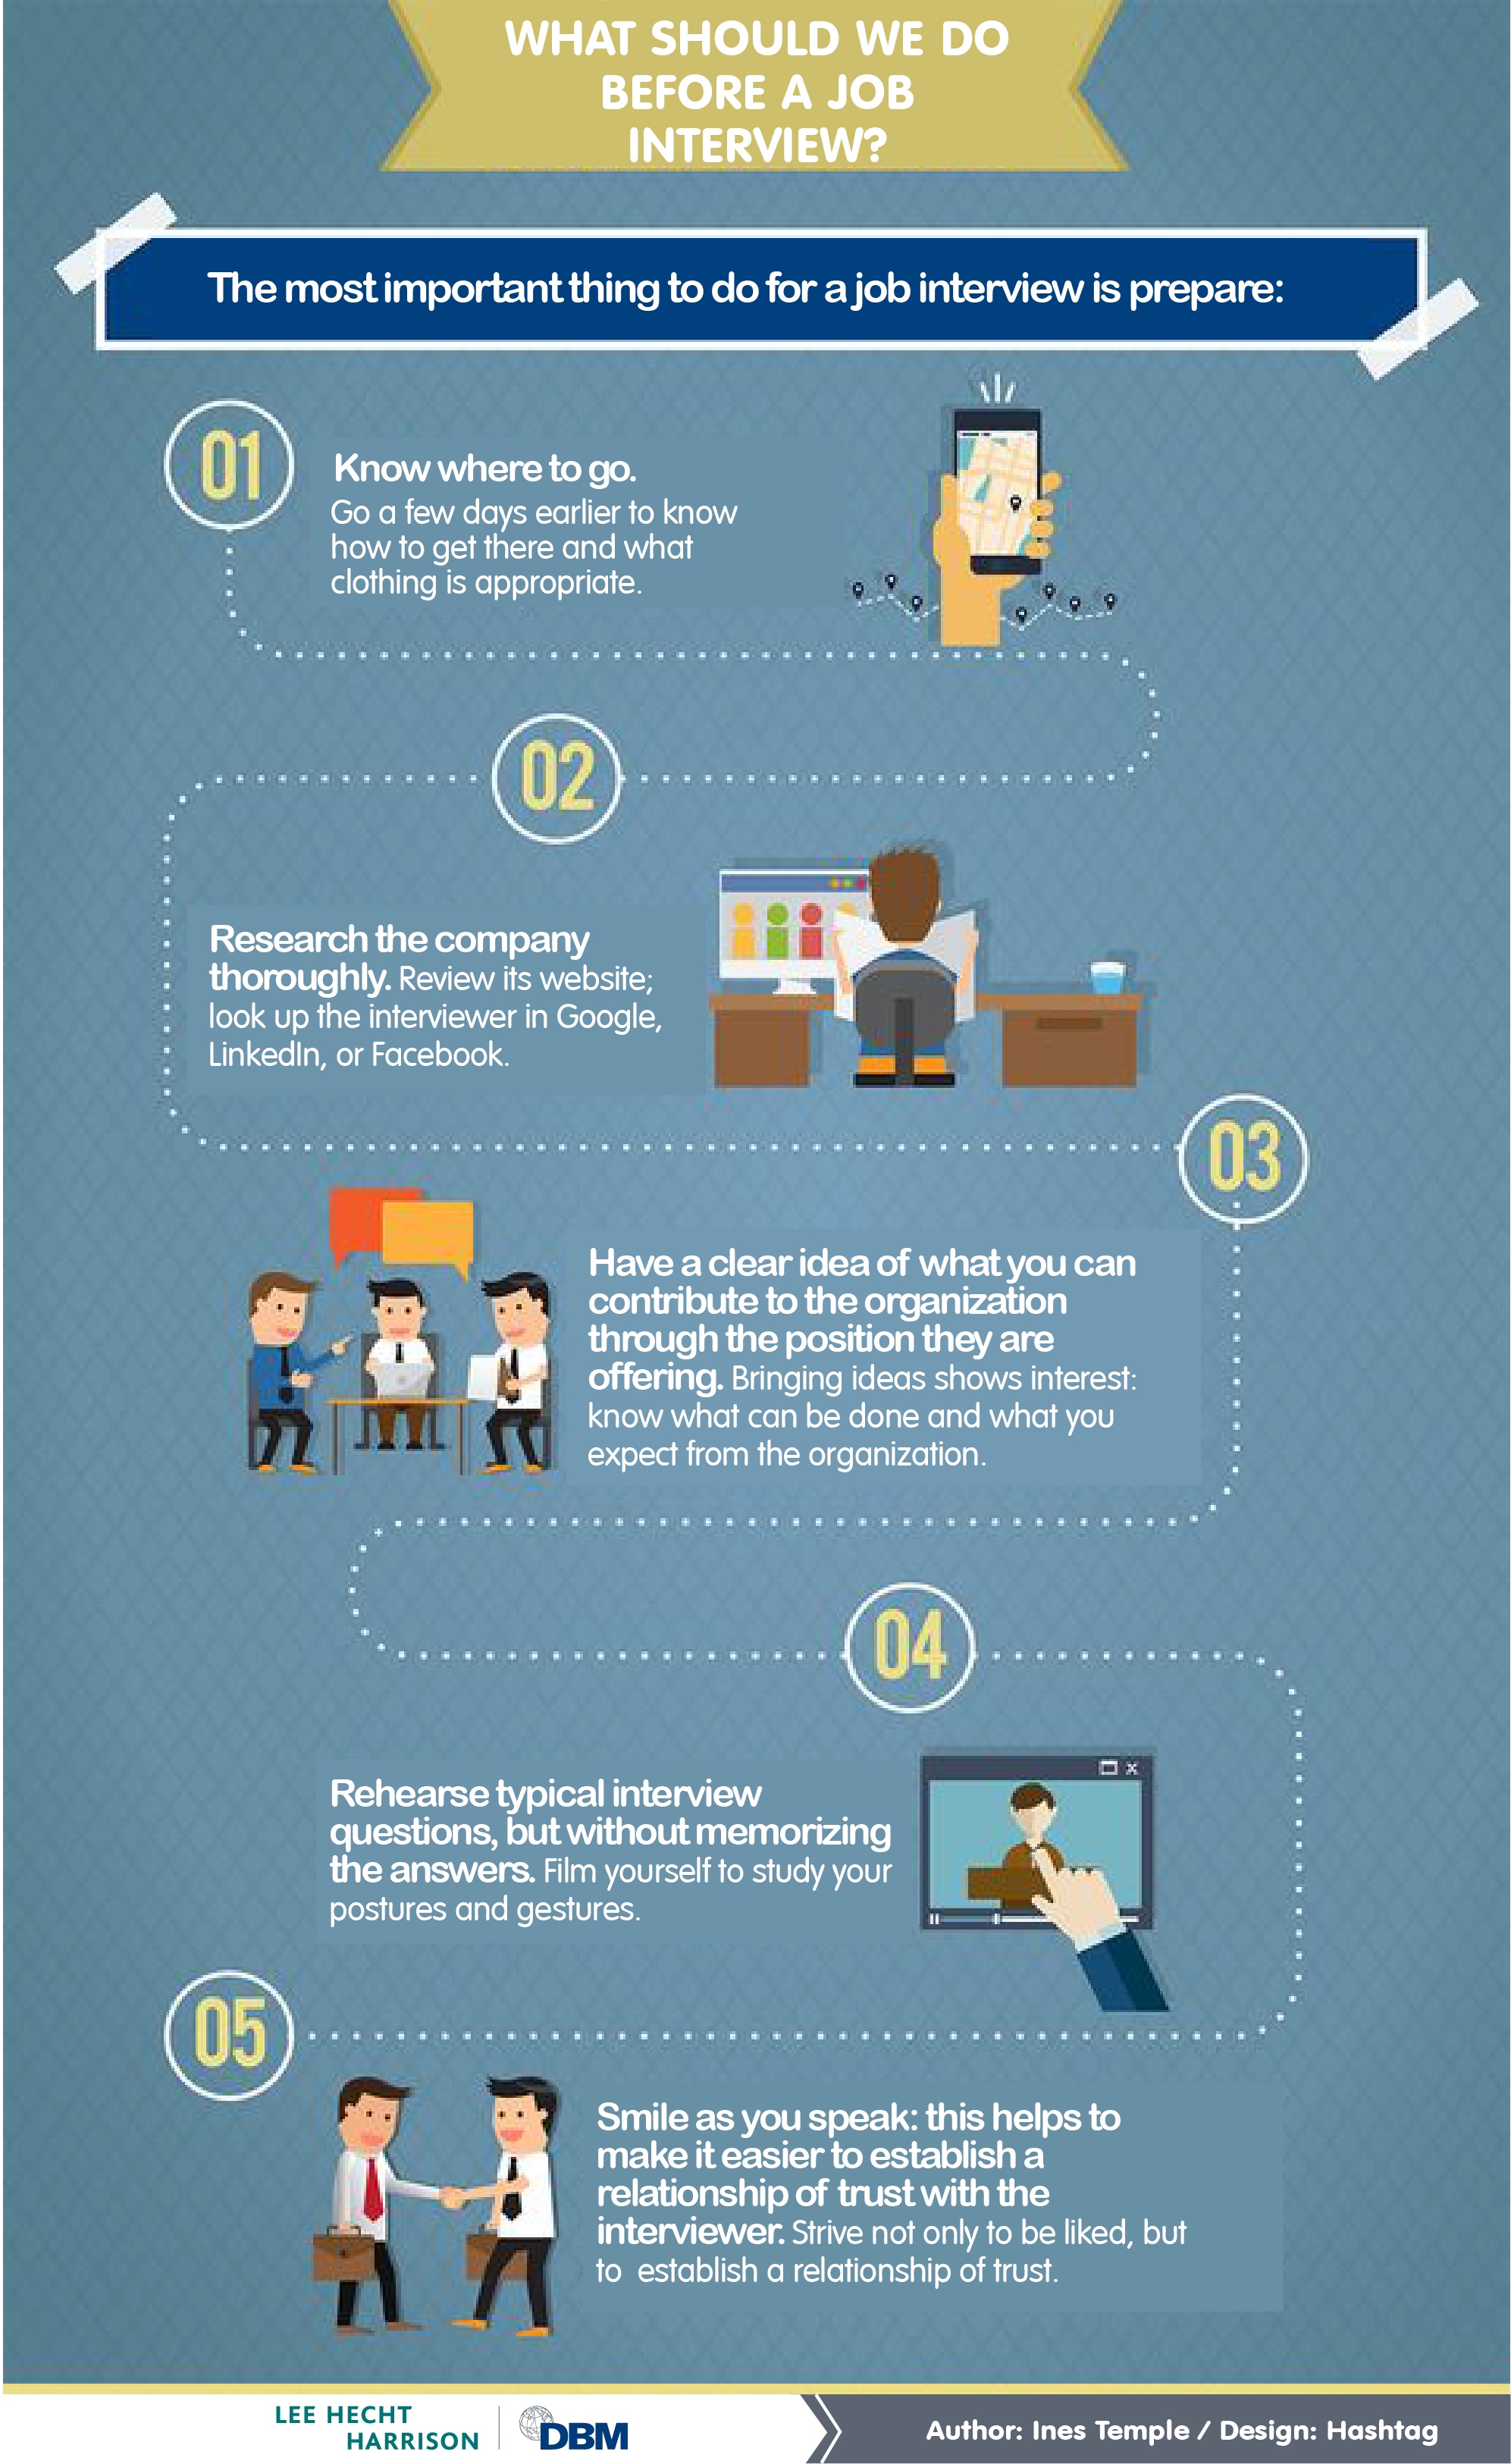 Infographic: What We Should Do For a Job Interview | Inés Temple